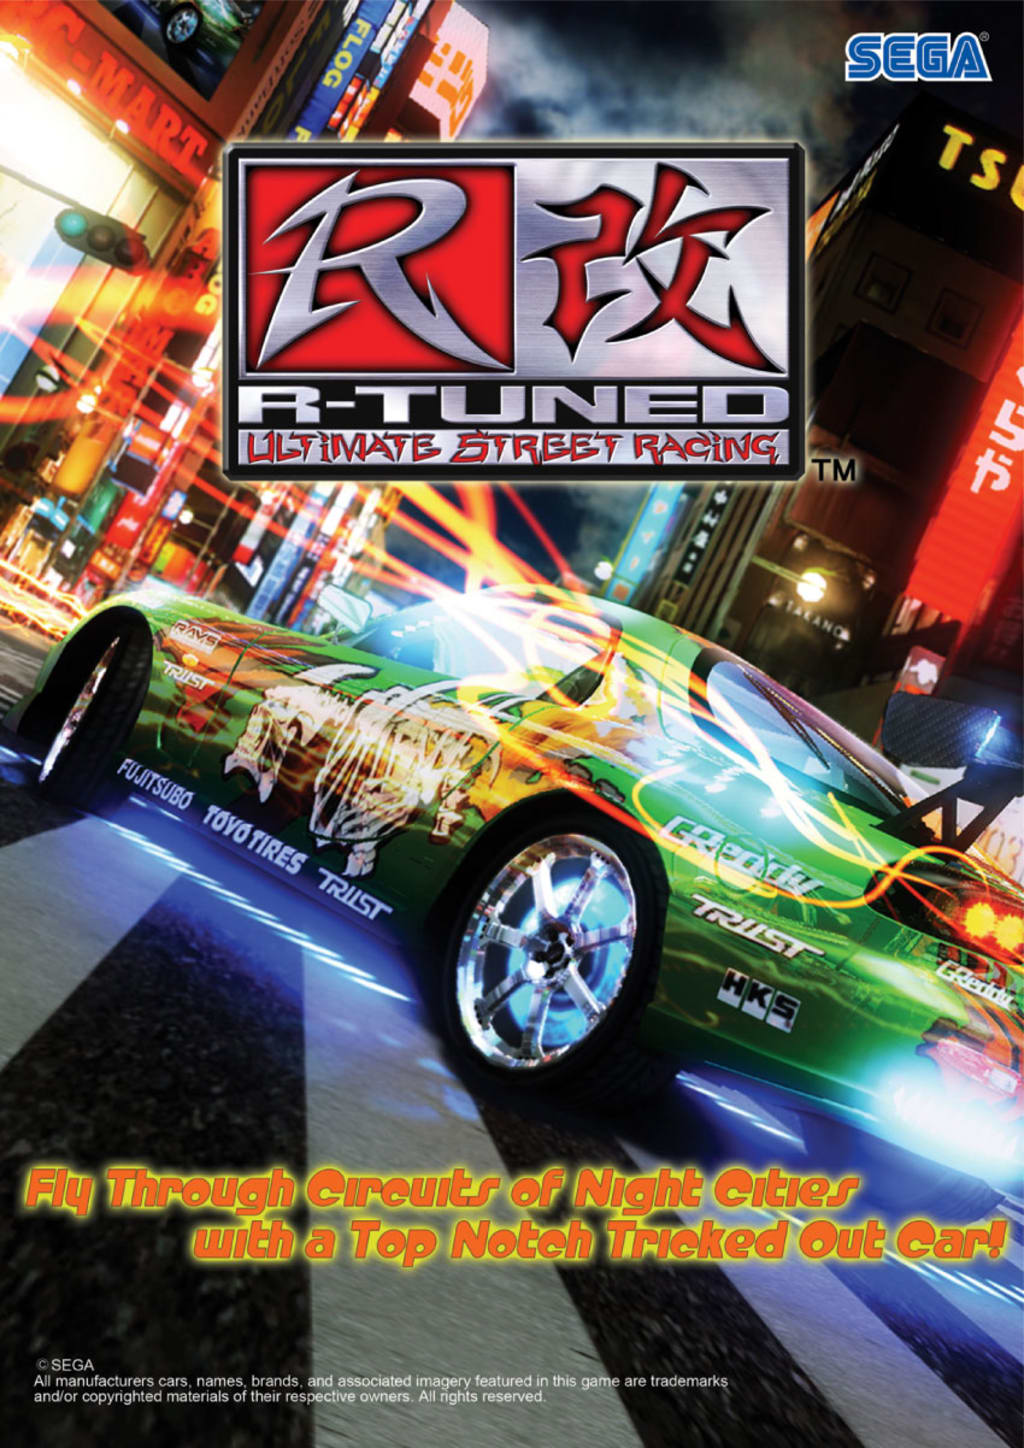 play SEGA r-tuned on pc now 2020 UK arcades!